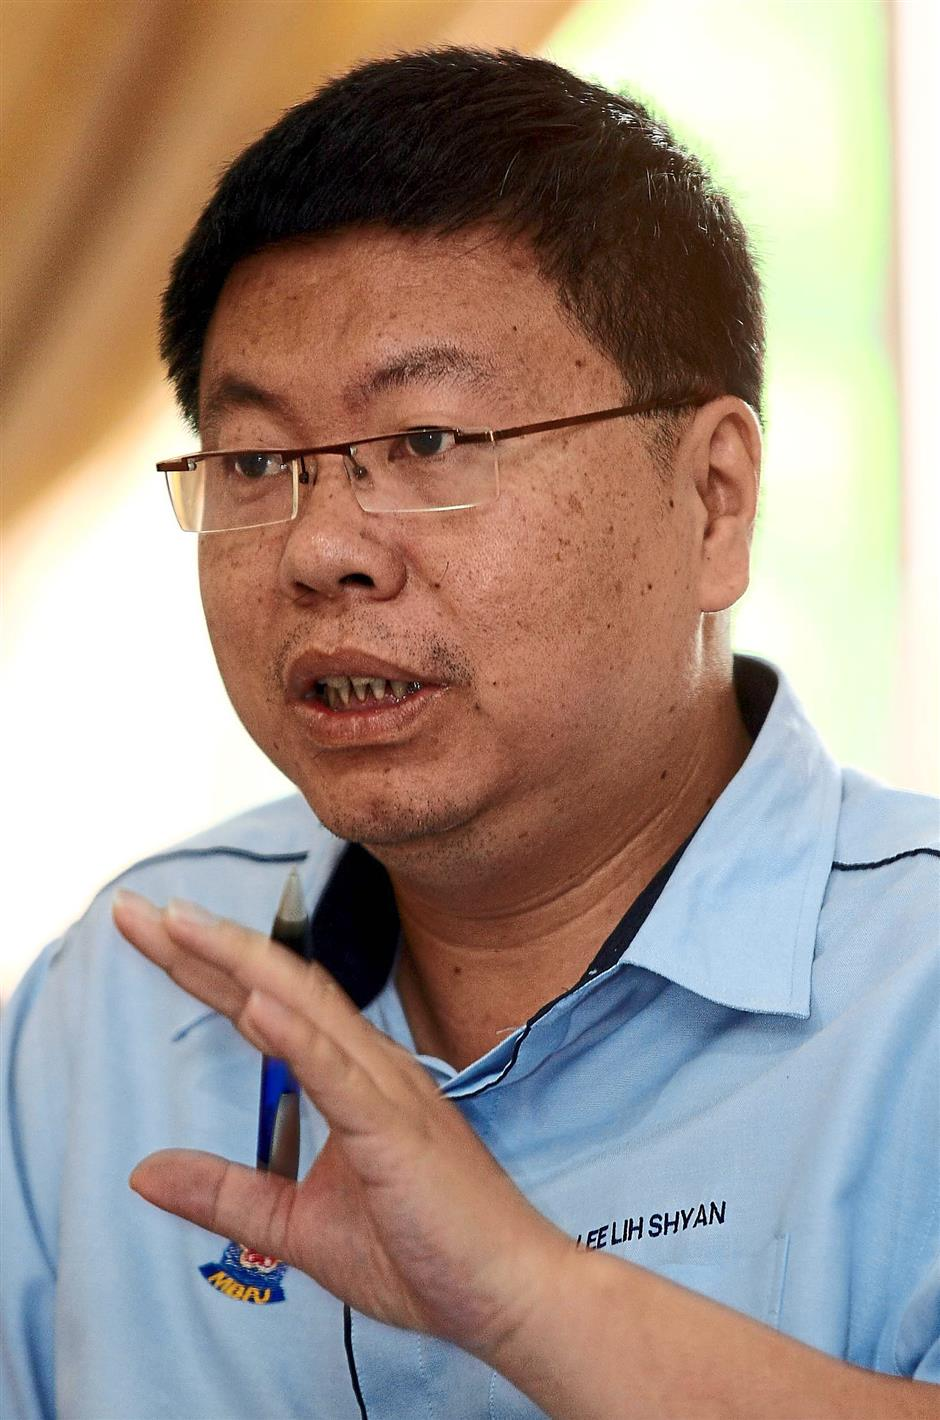 Petaling Jaya City Council One-Stop Centre director Lee Lih Shyan. AHMAD IZZRAFIQ ALIAS / The Star.